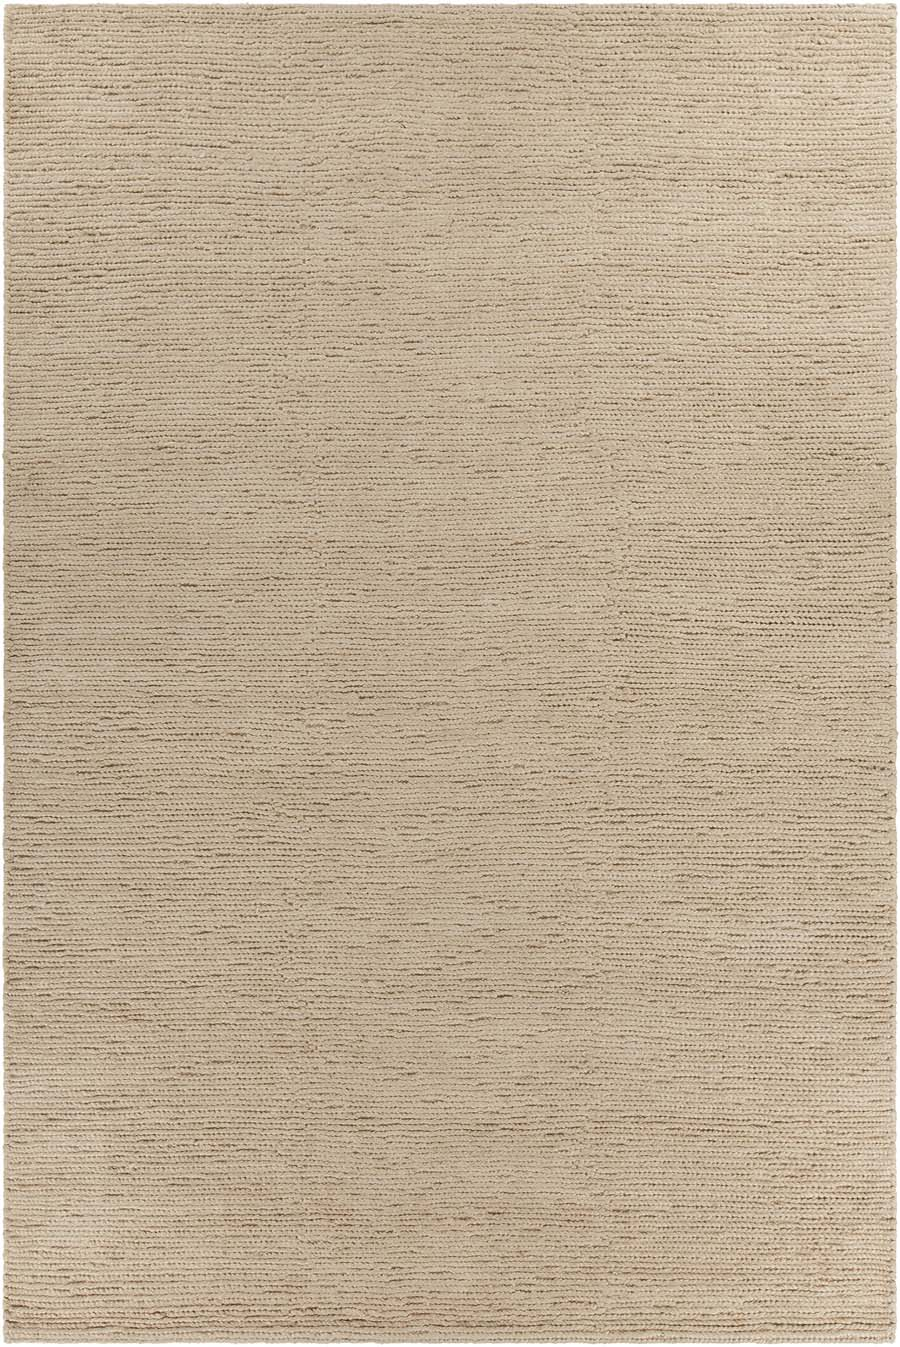 Chandra Art ART-3503 Rug